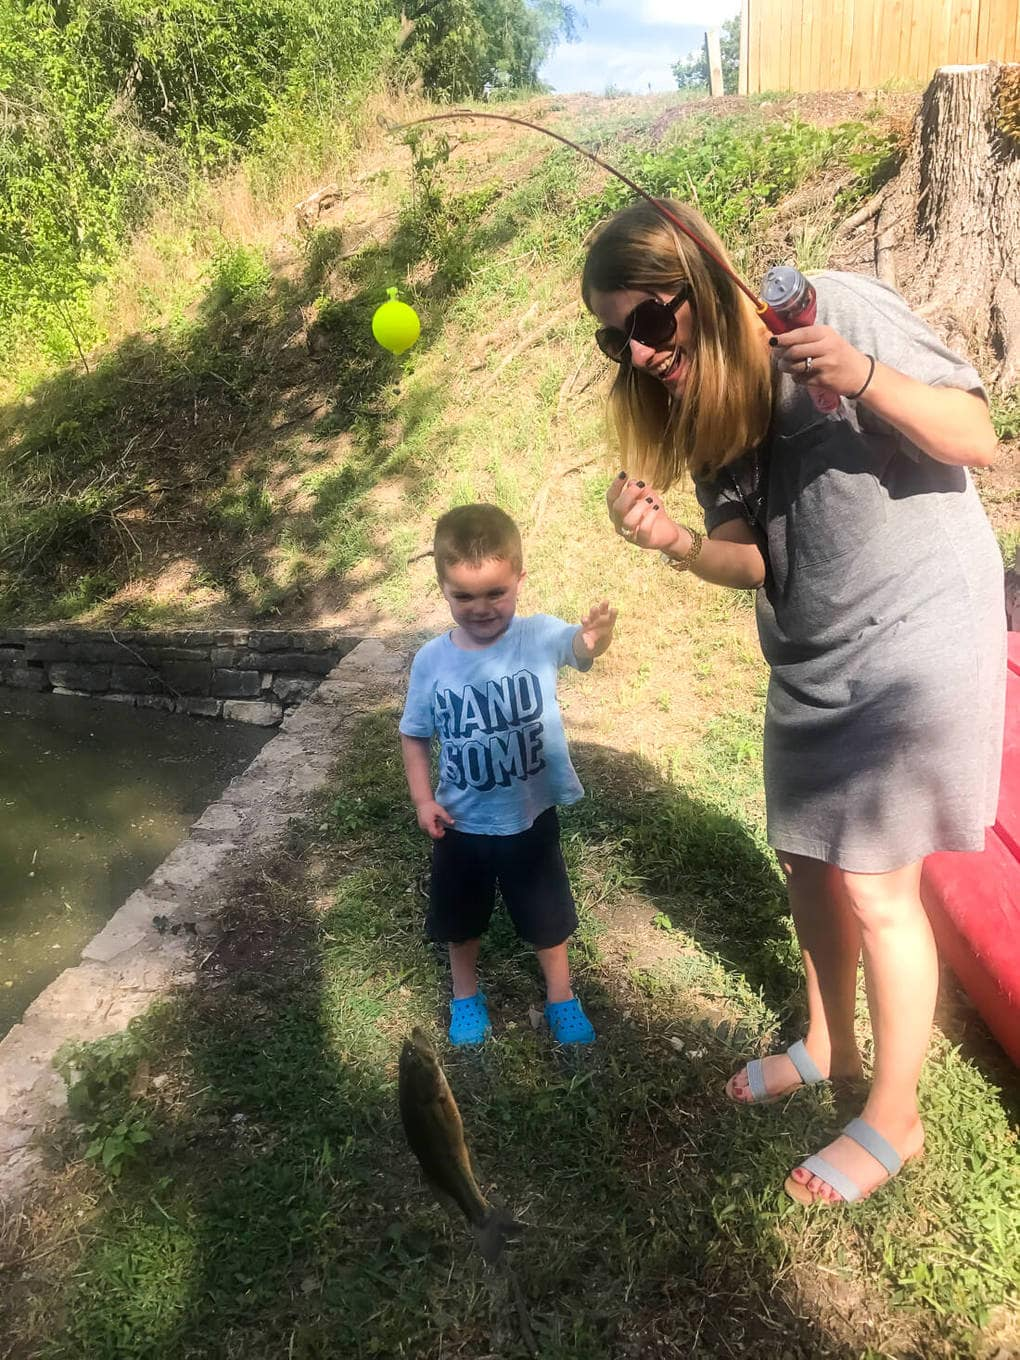 A peek into a quick family vacation in Granbury, Texas. It's one of the best spots in Texas for a quick weekend getaway, and there's so much to see and do!